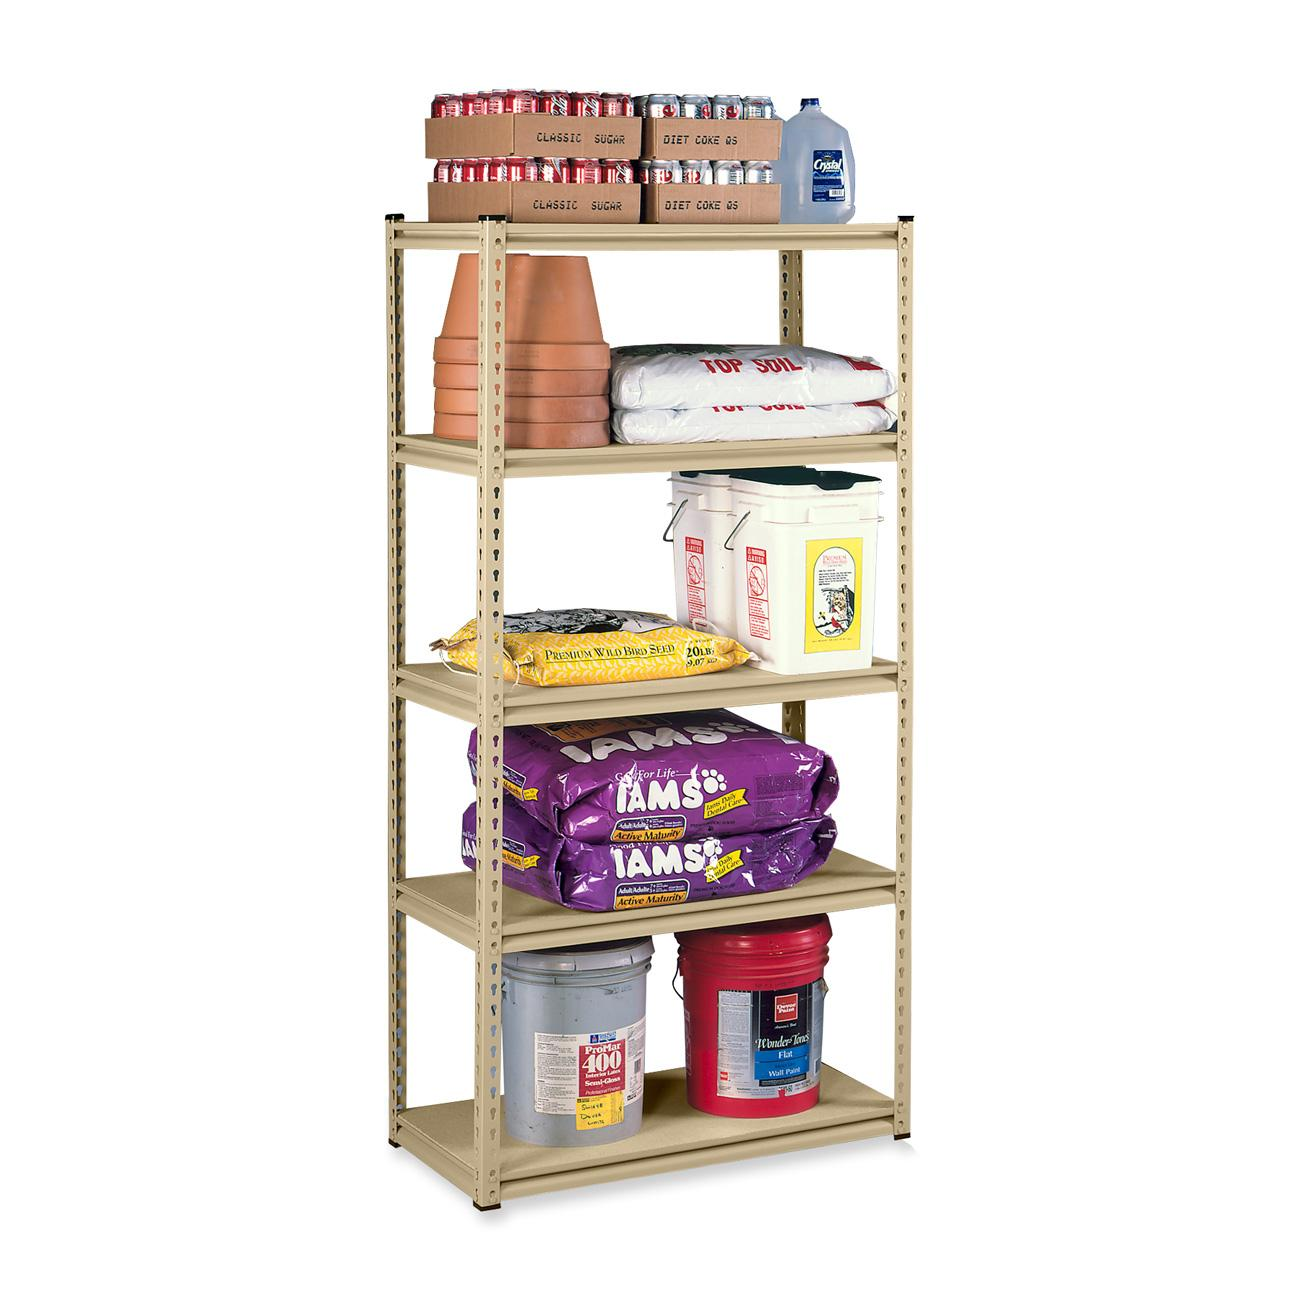 Tennsco, TNNLSS482484SD, Stur-D-Stor Steel Shelving, 1 Each, Sand